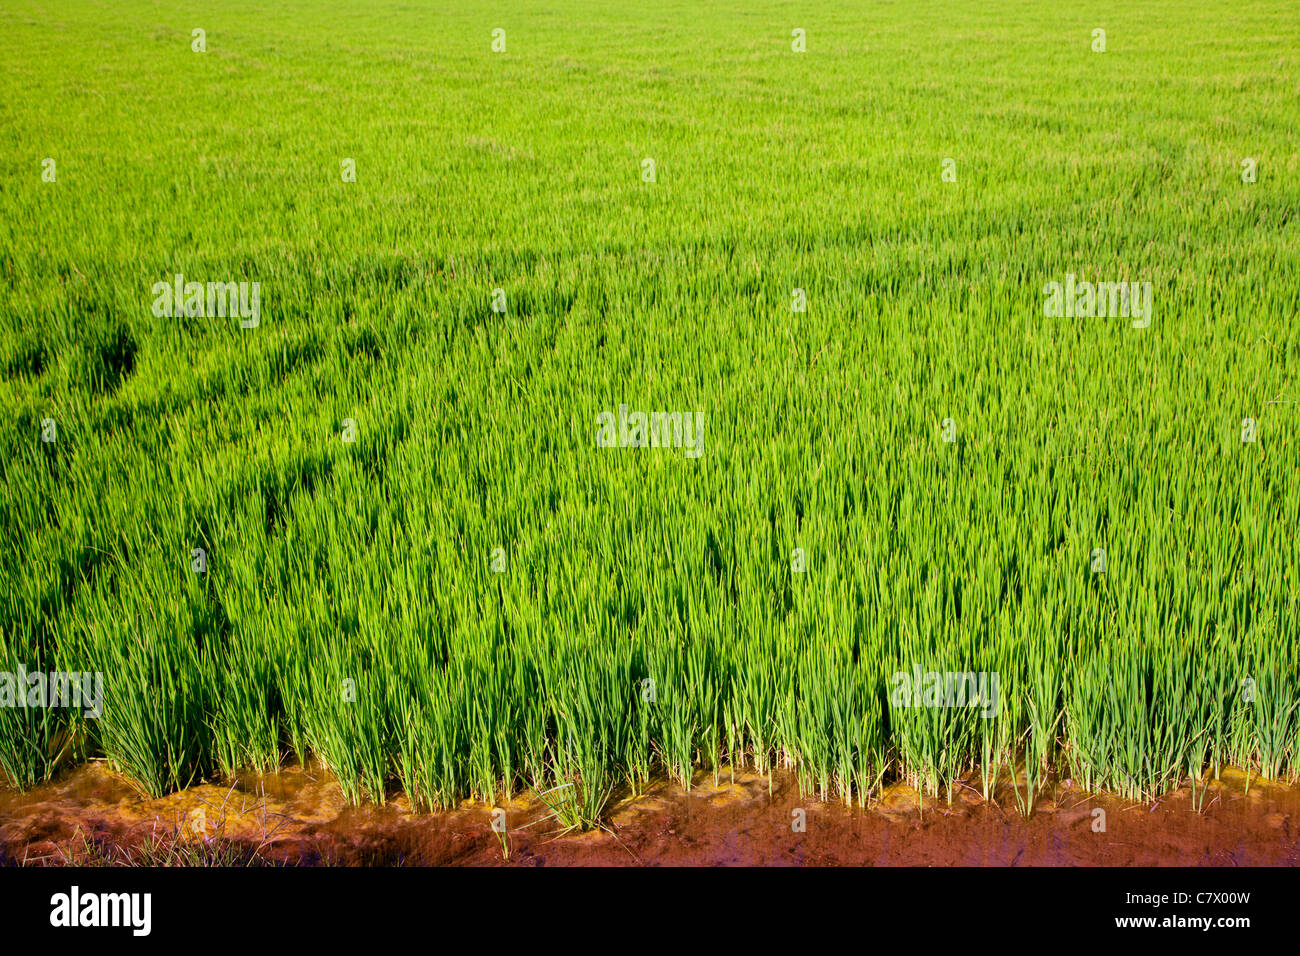 green grass rice cereal field in Valencia Spain Stock Photo